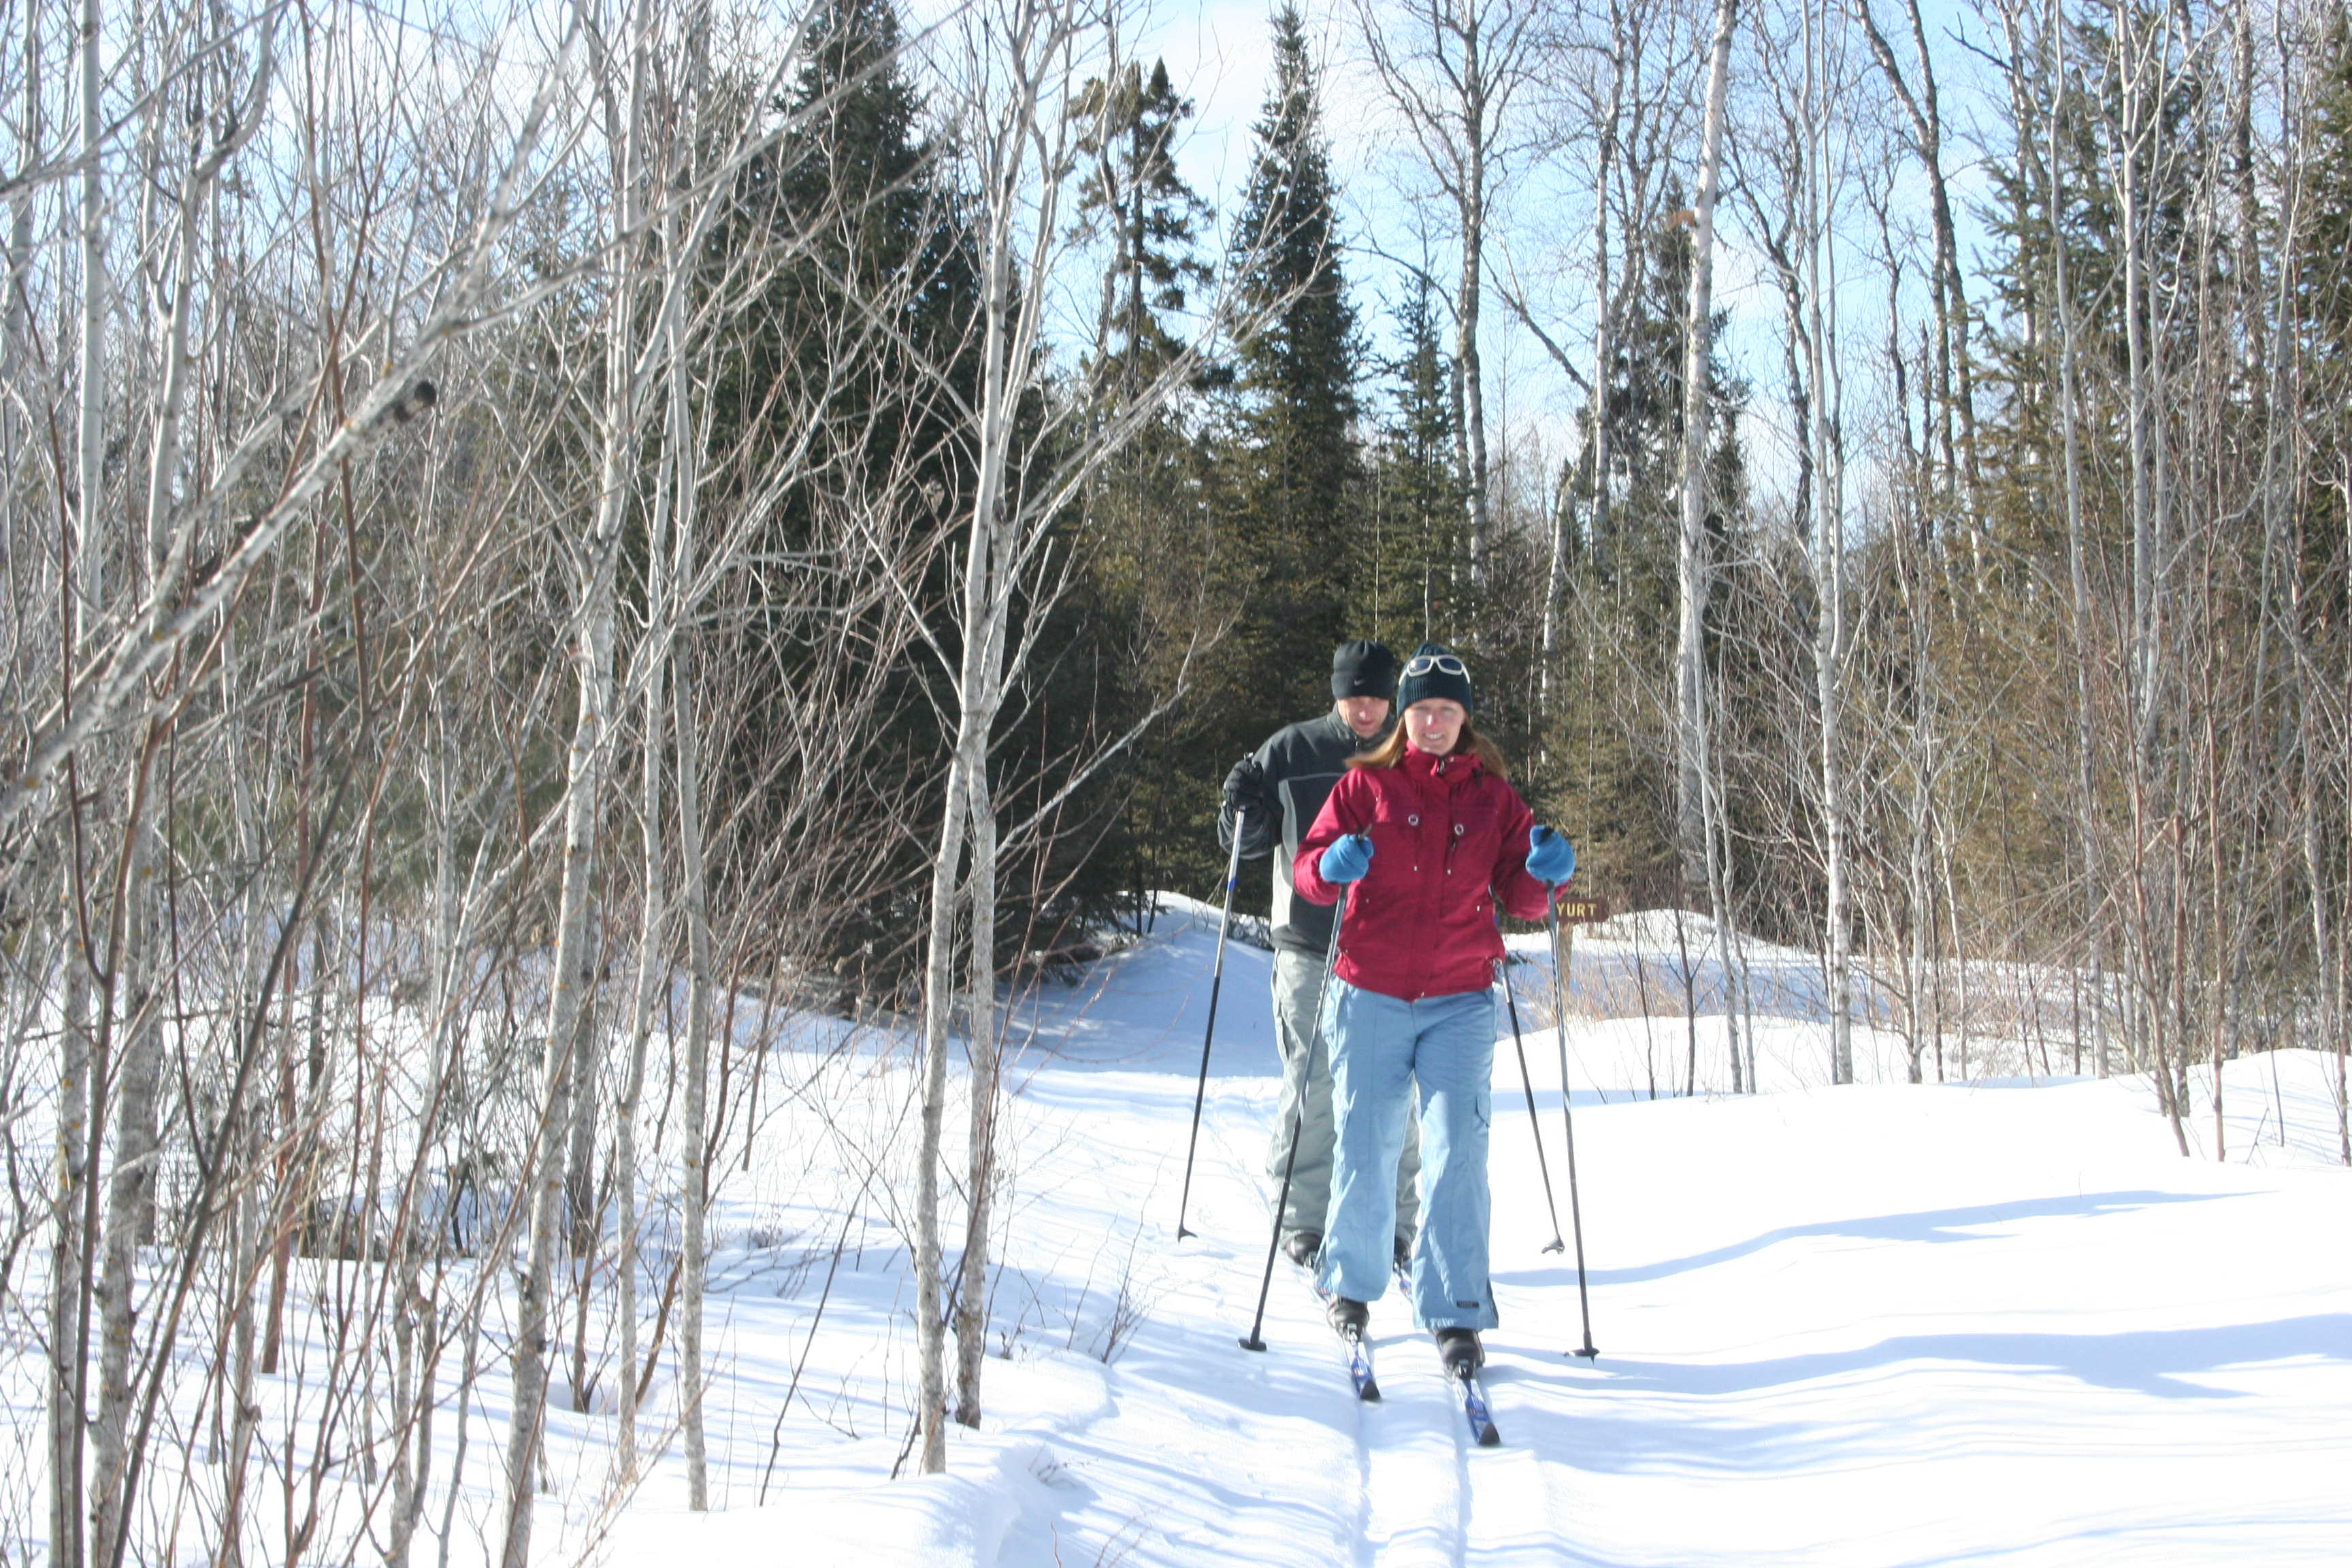 April 1, 2013- skiing the Banadad Trails